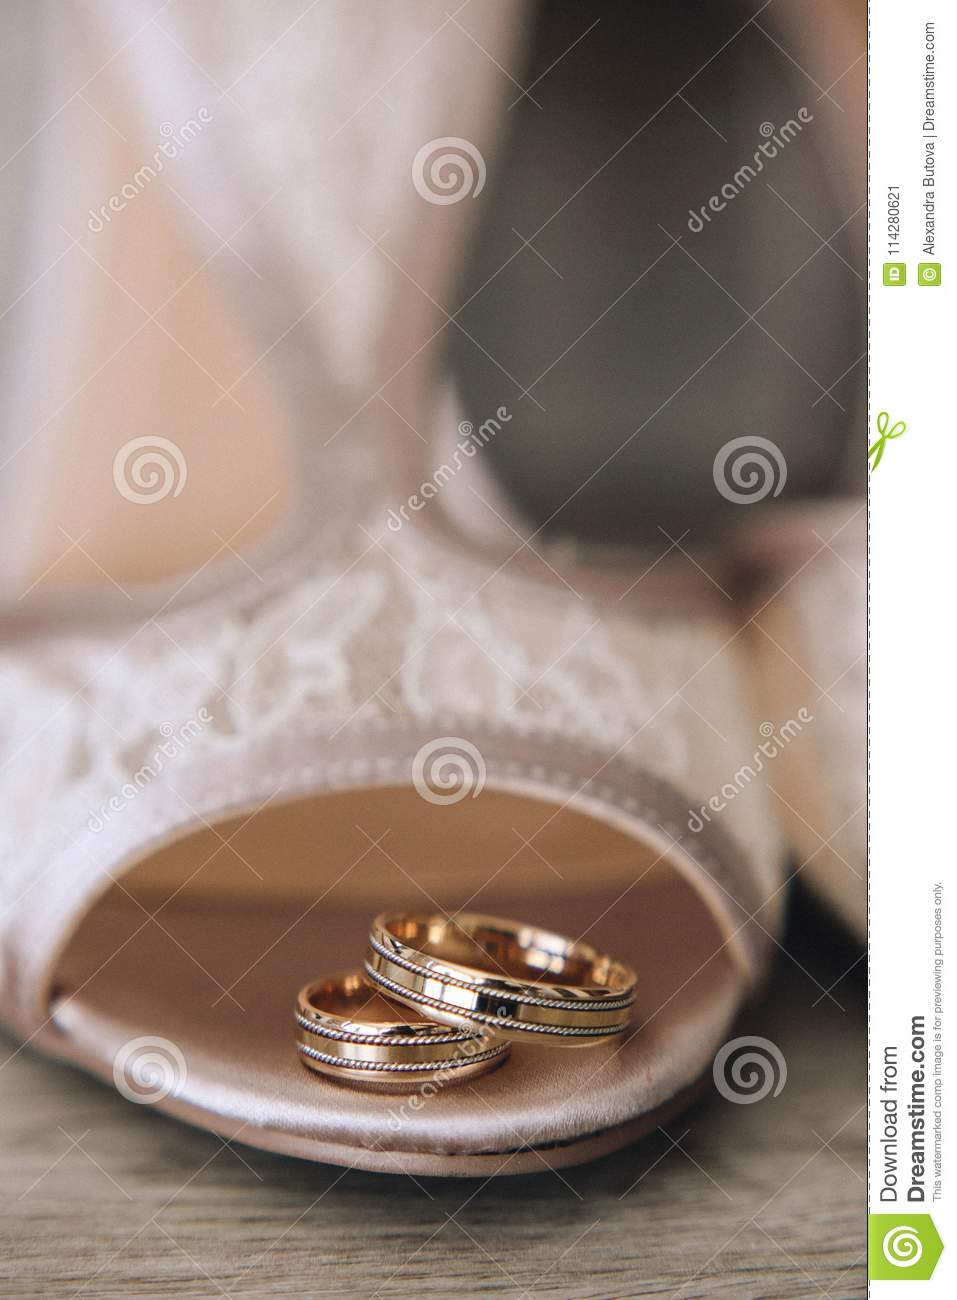 Gold wedding rings with a design are on the bride`s shoes with a lace. Close up